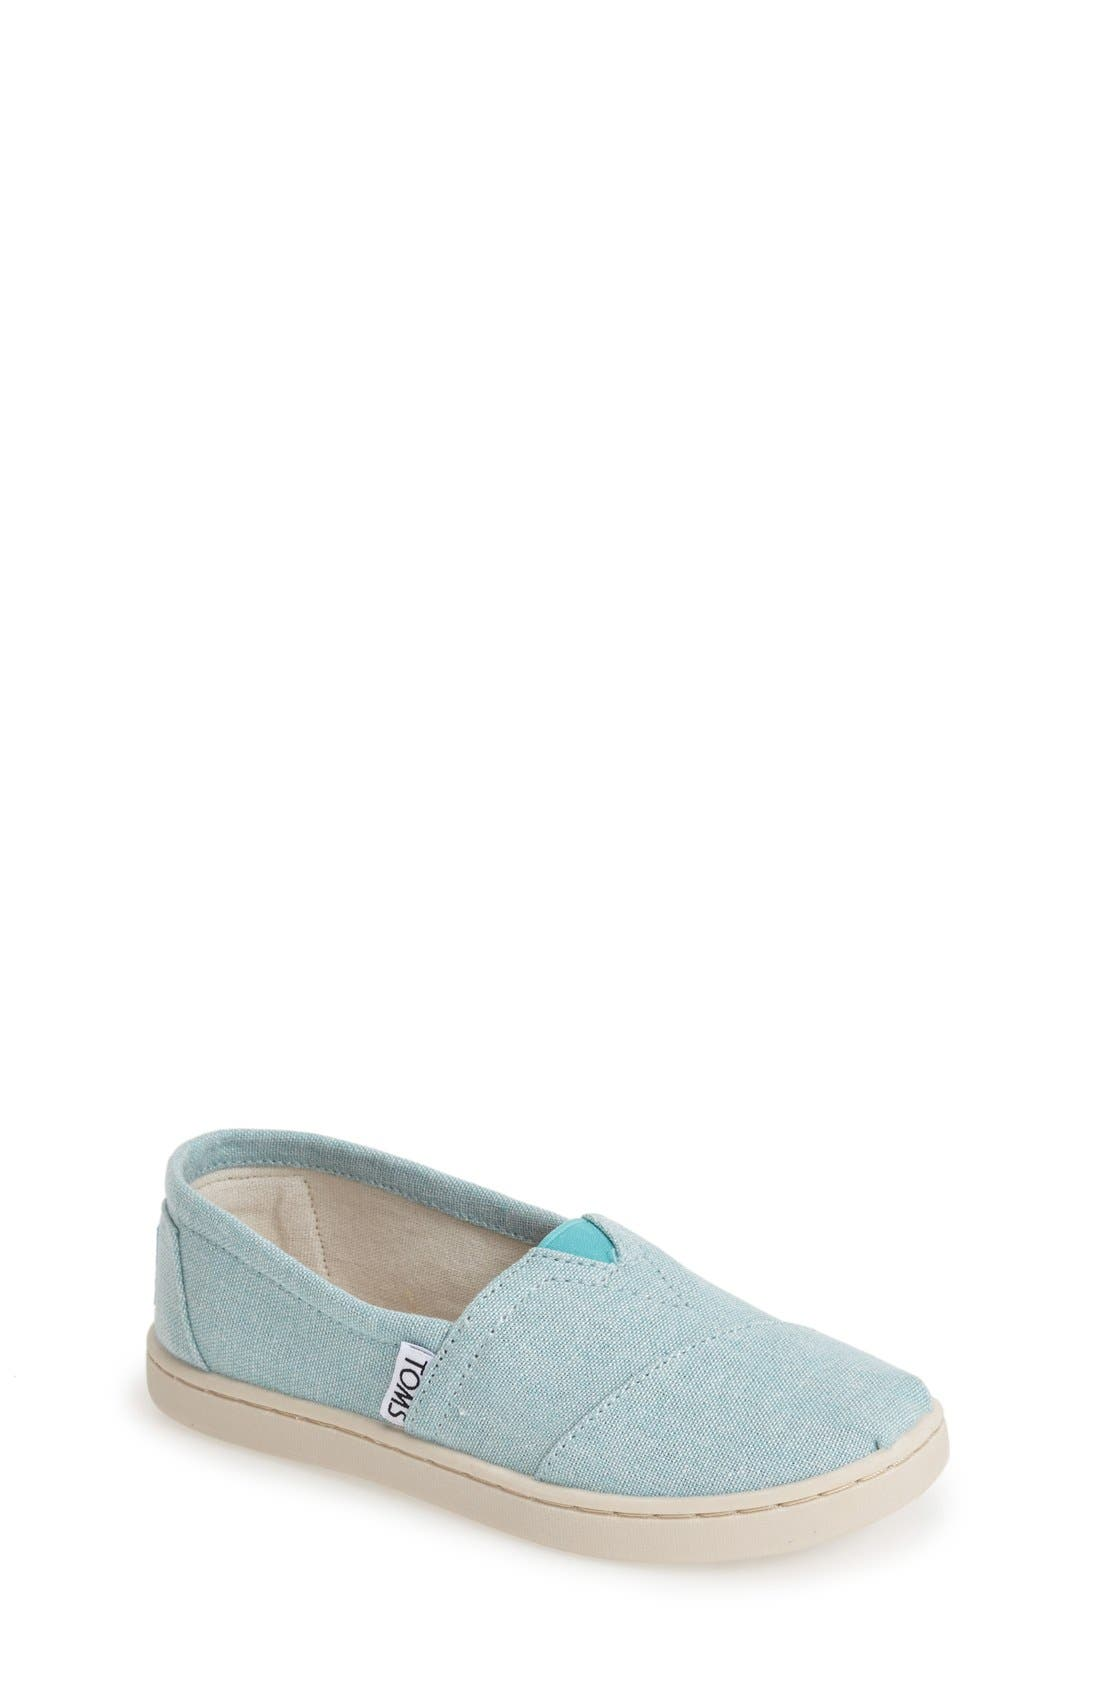 Main Image - TOMS 'Classic Youth - Chambray' Slip-On (Toddler, Little Kid & Big Kid)